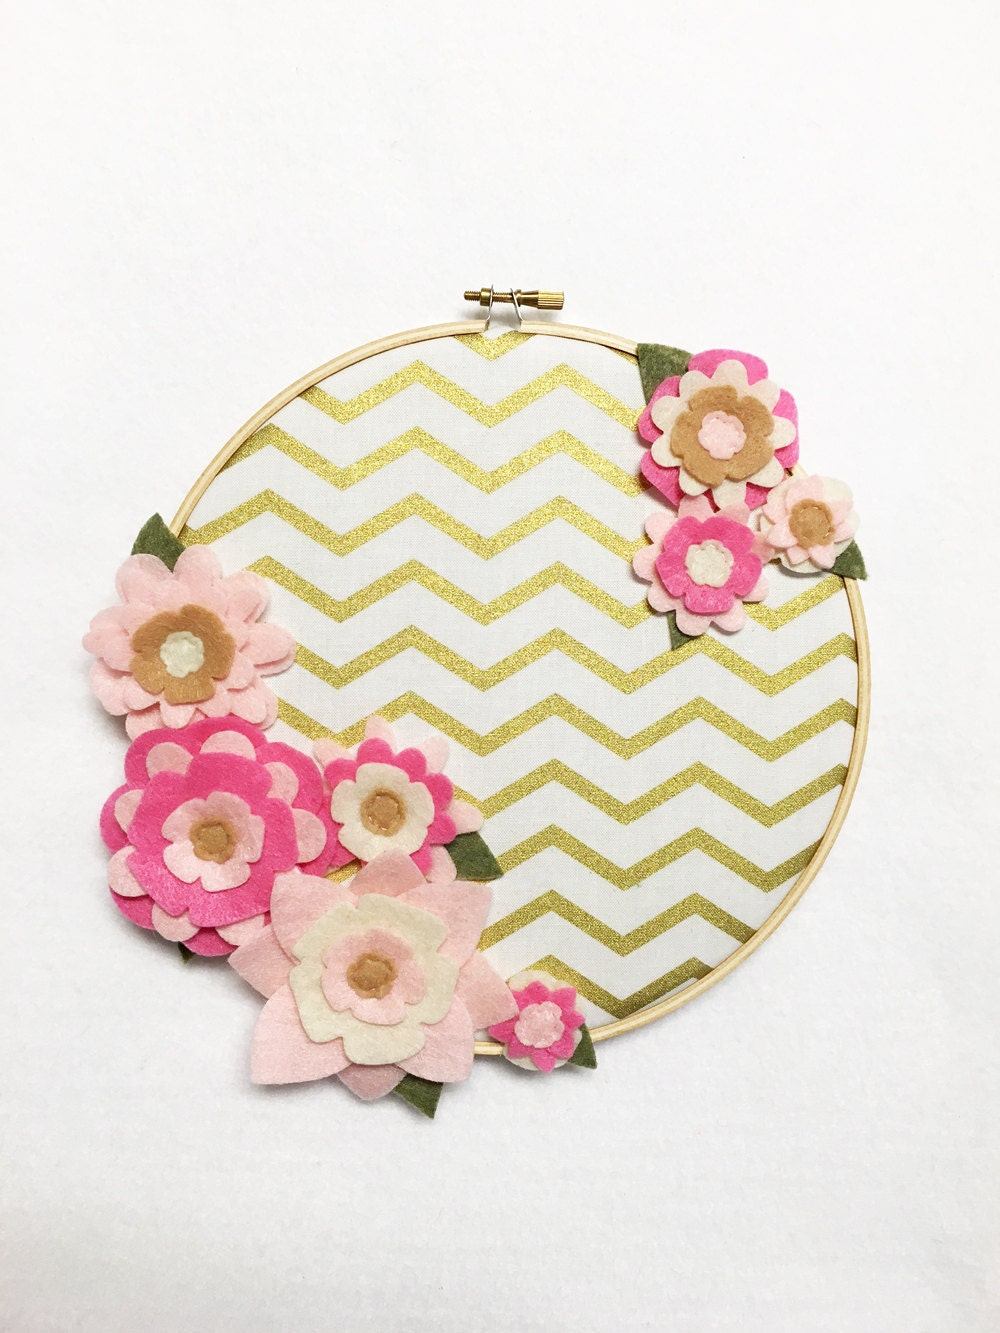 Flower wall art embroidery hoop delicate gold